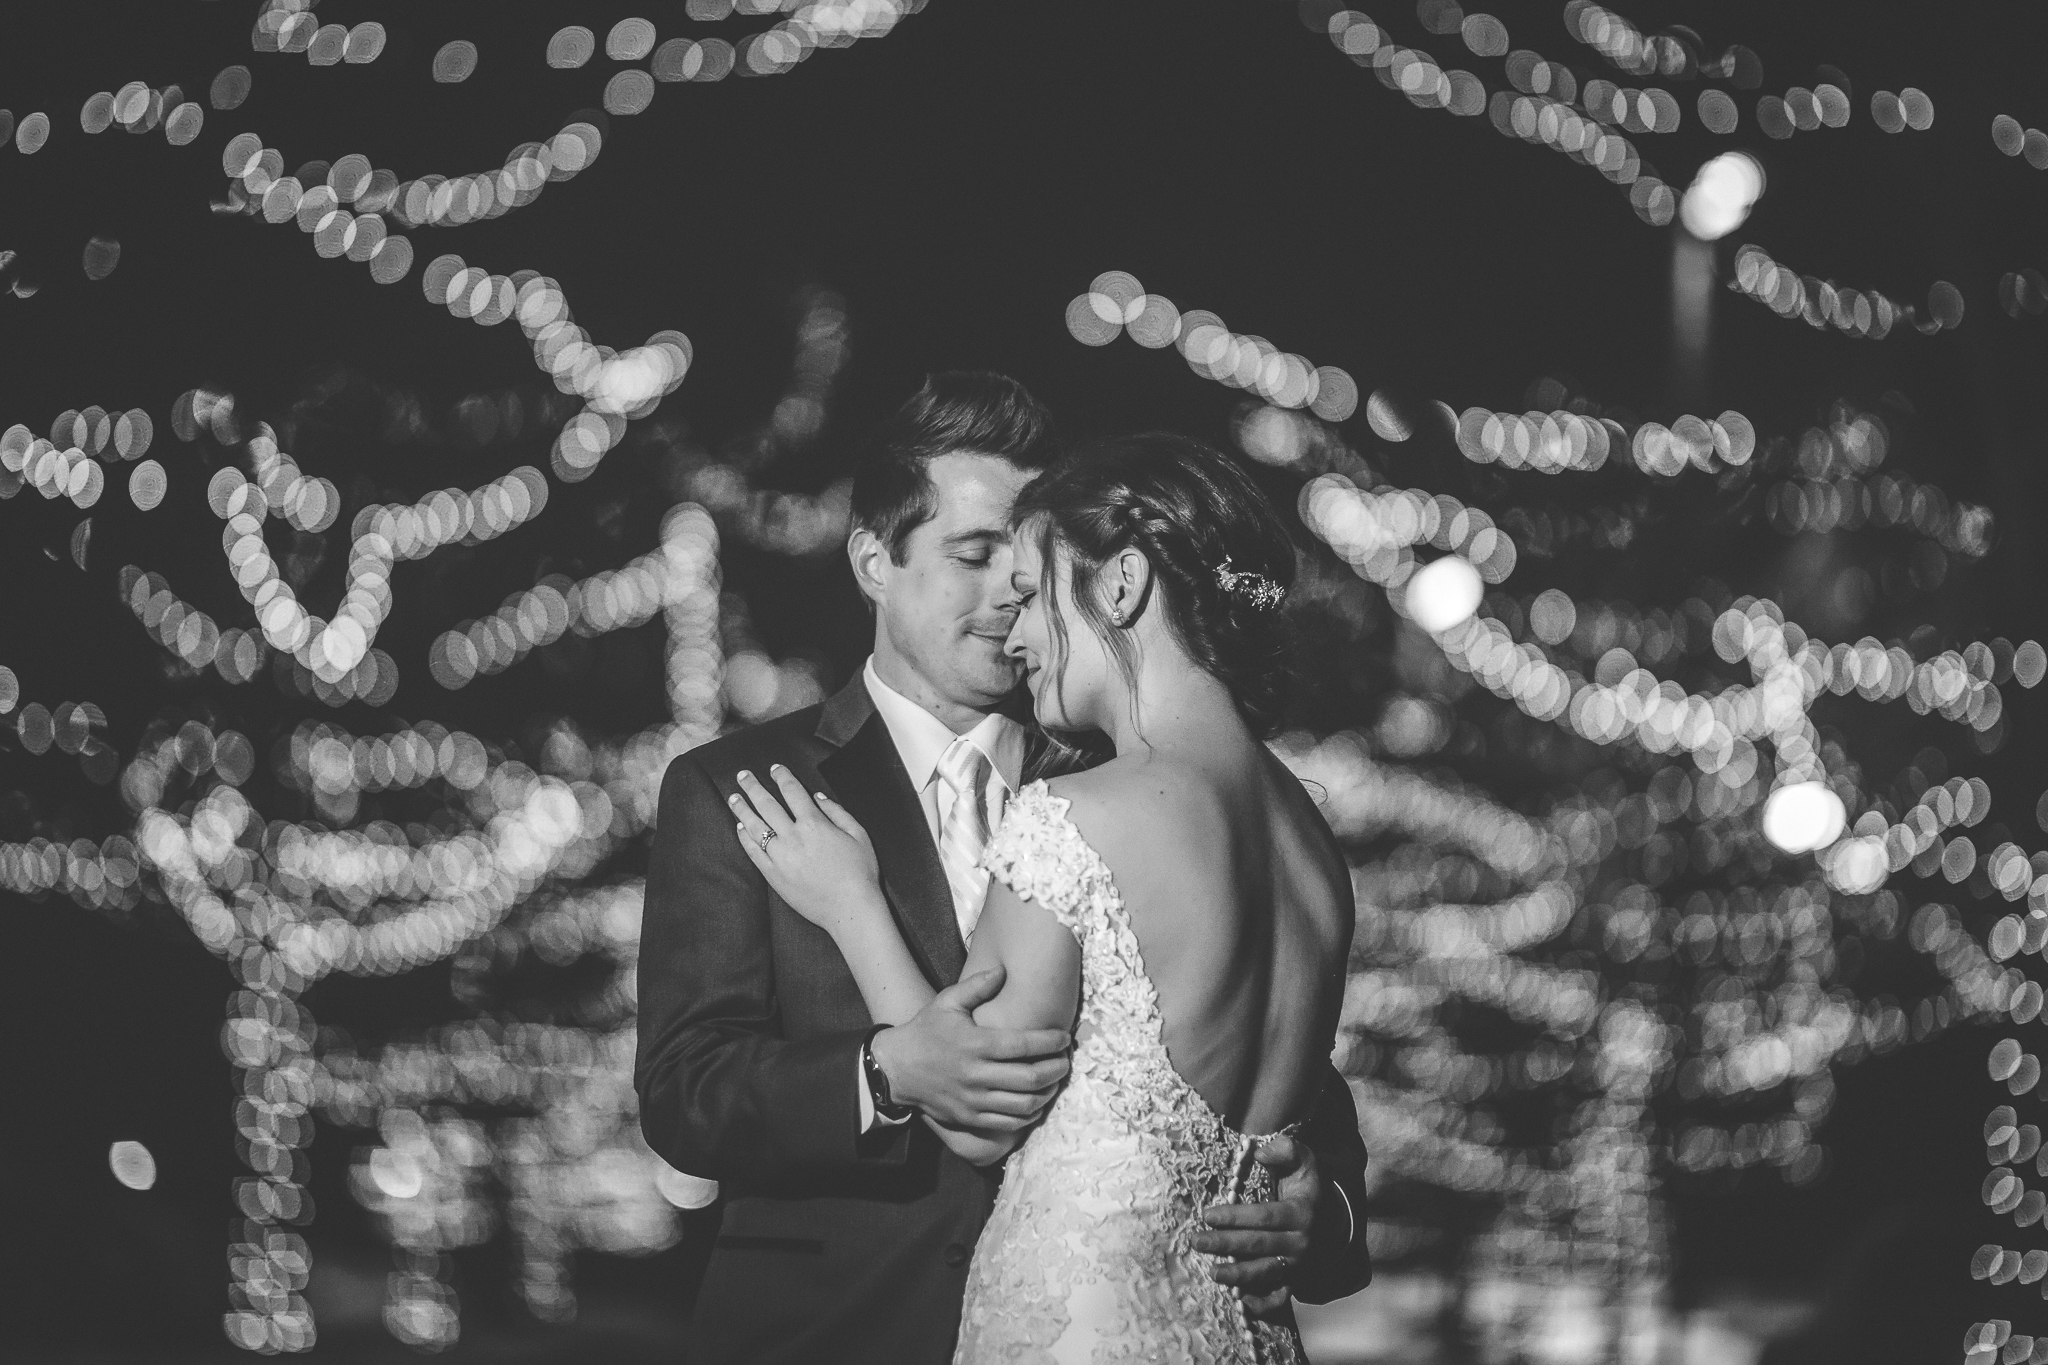 minneapolis winter wedding photography-42.jpg